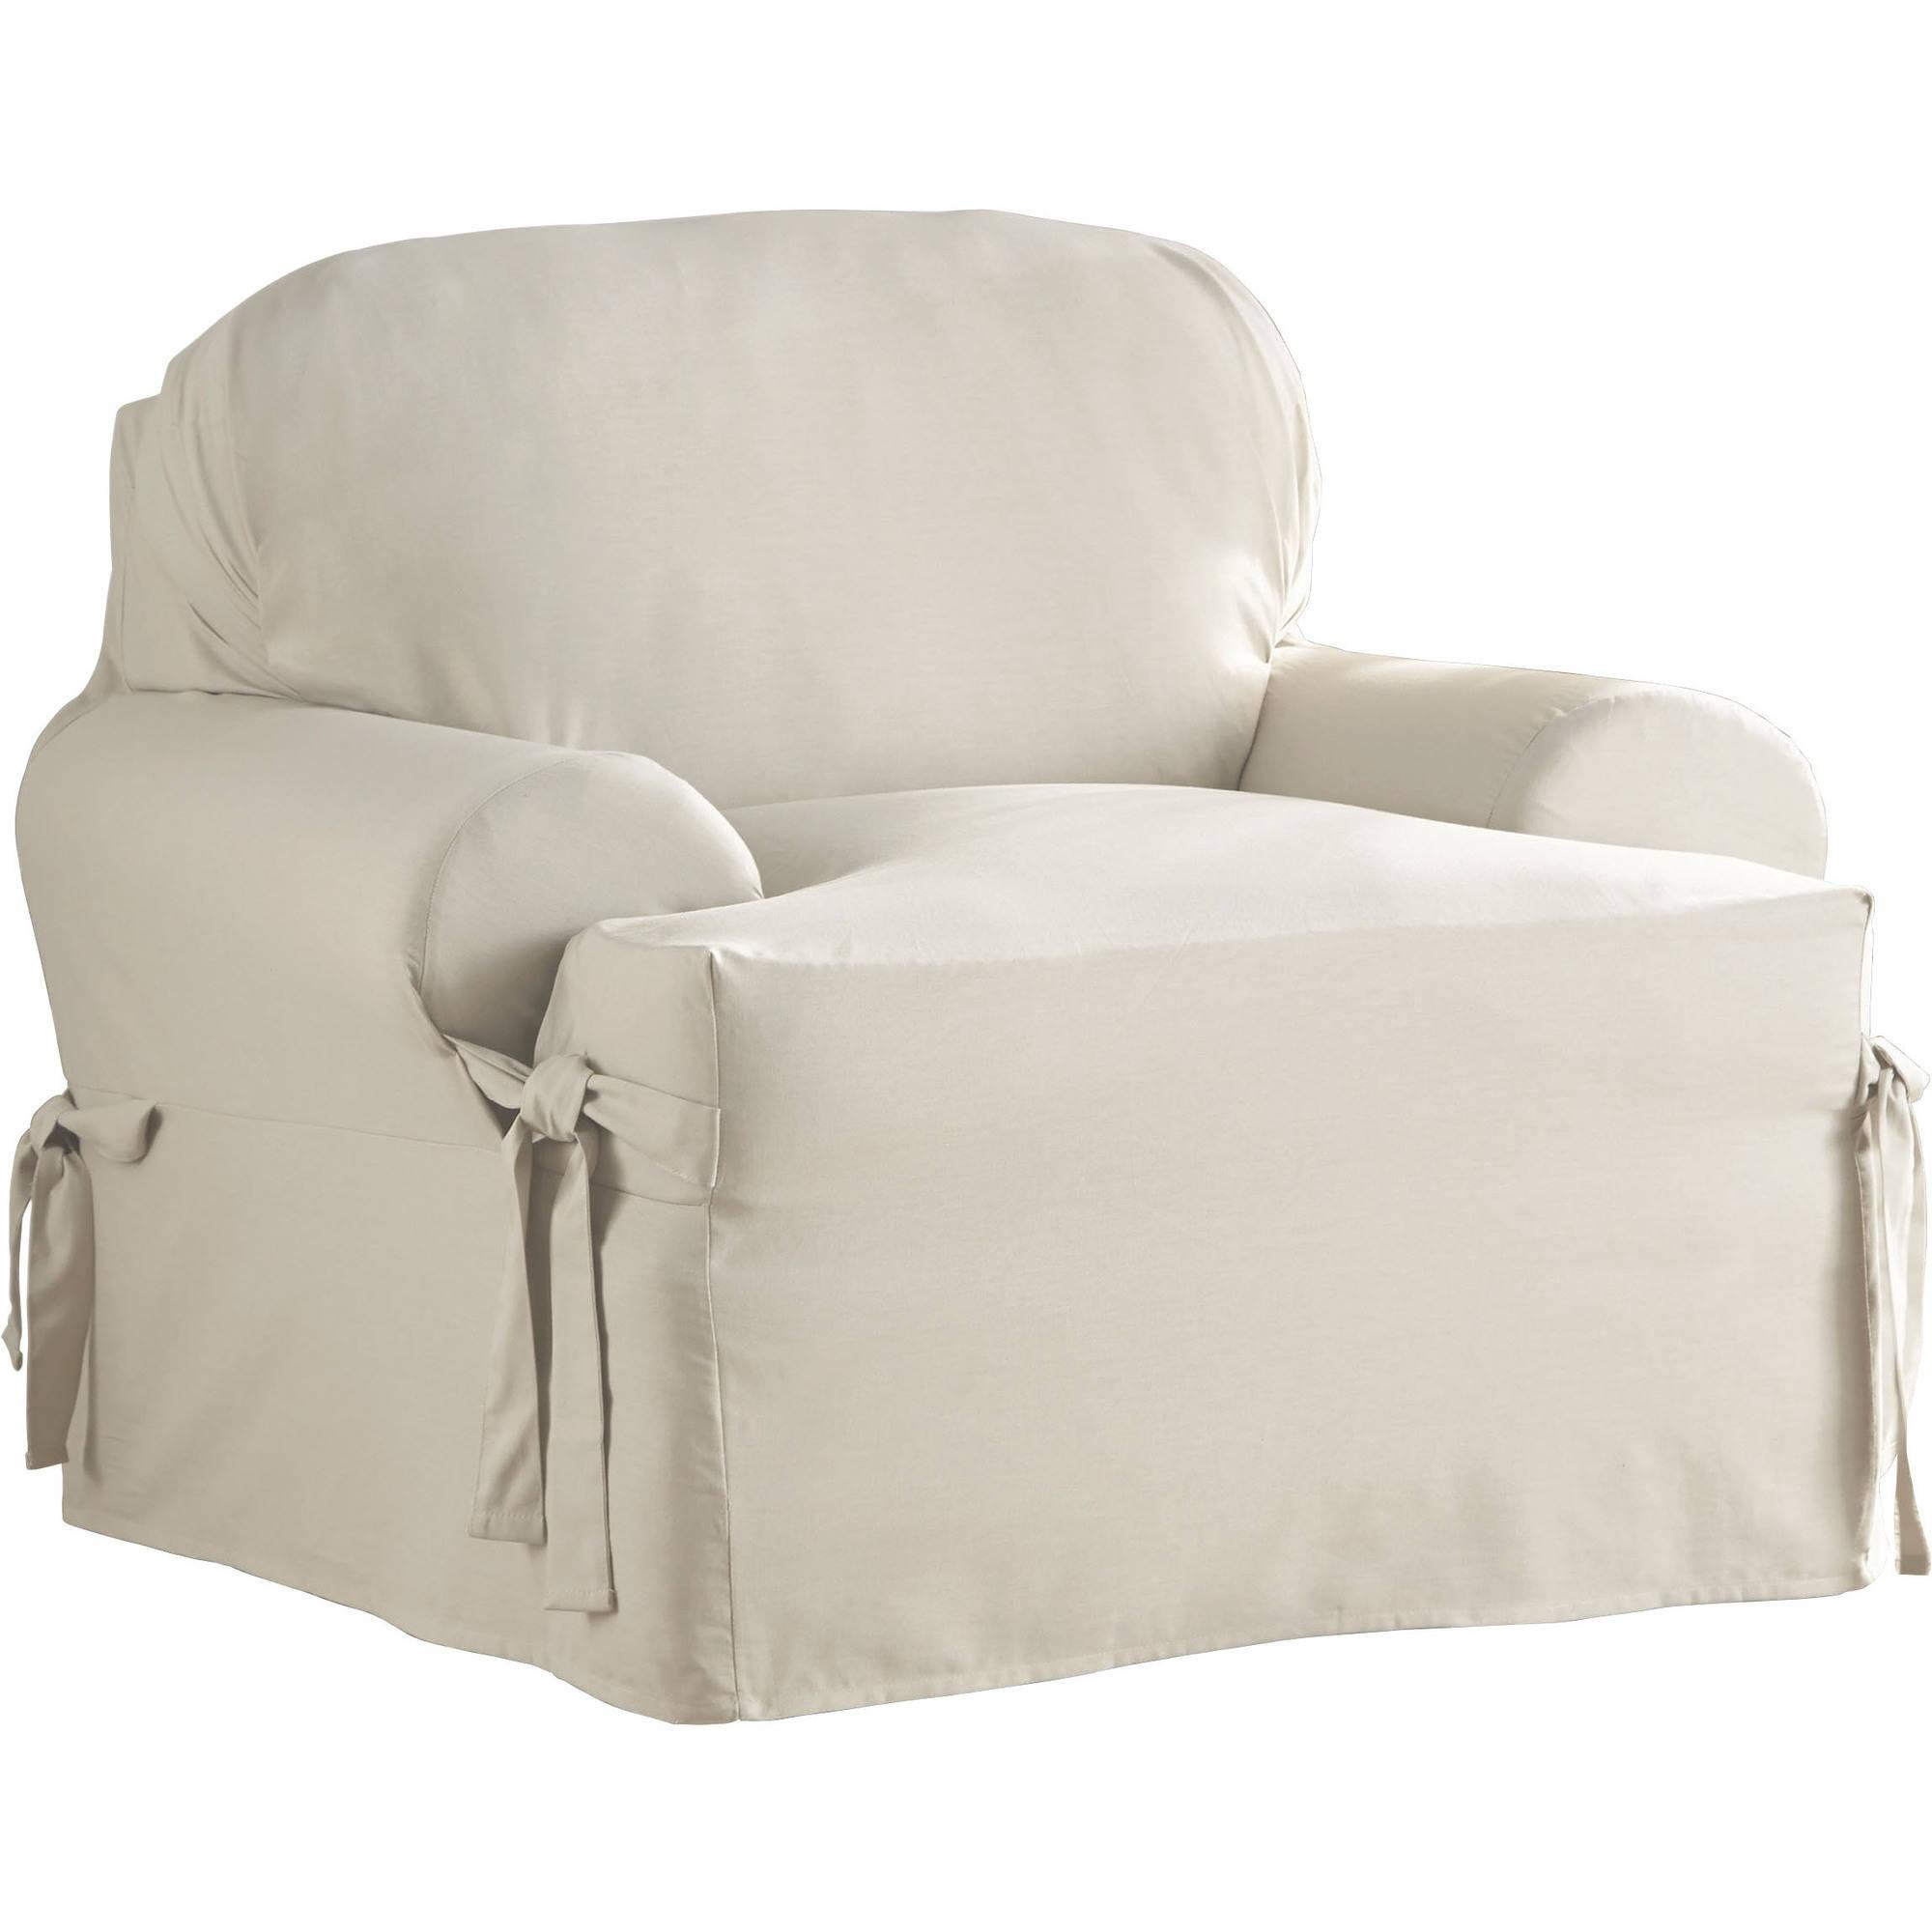 Slipcovers – Walmart Regarding Walmart Slipcovers For Sofas (Image 20 of 20)